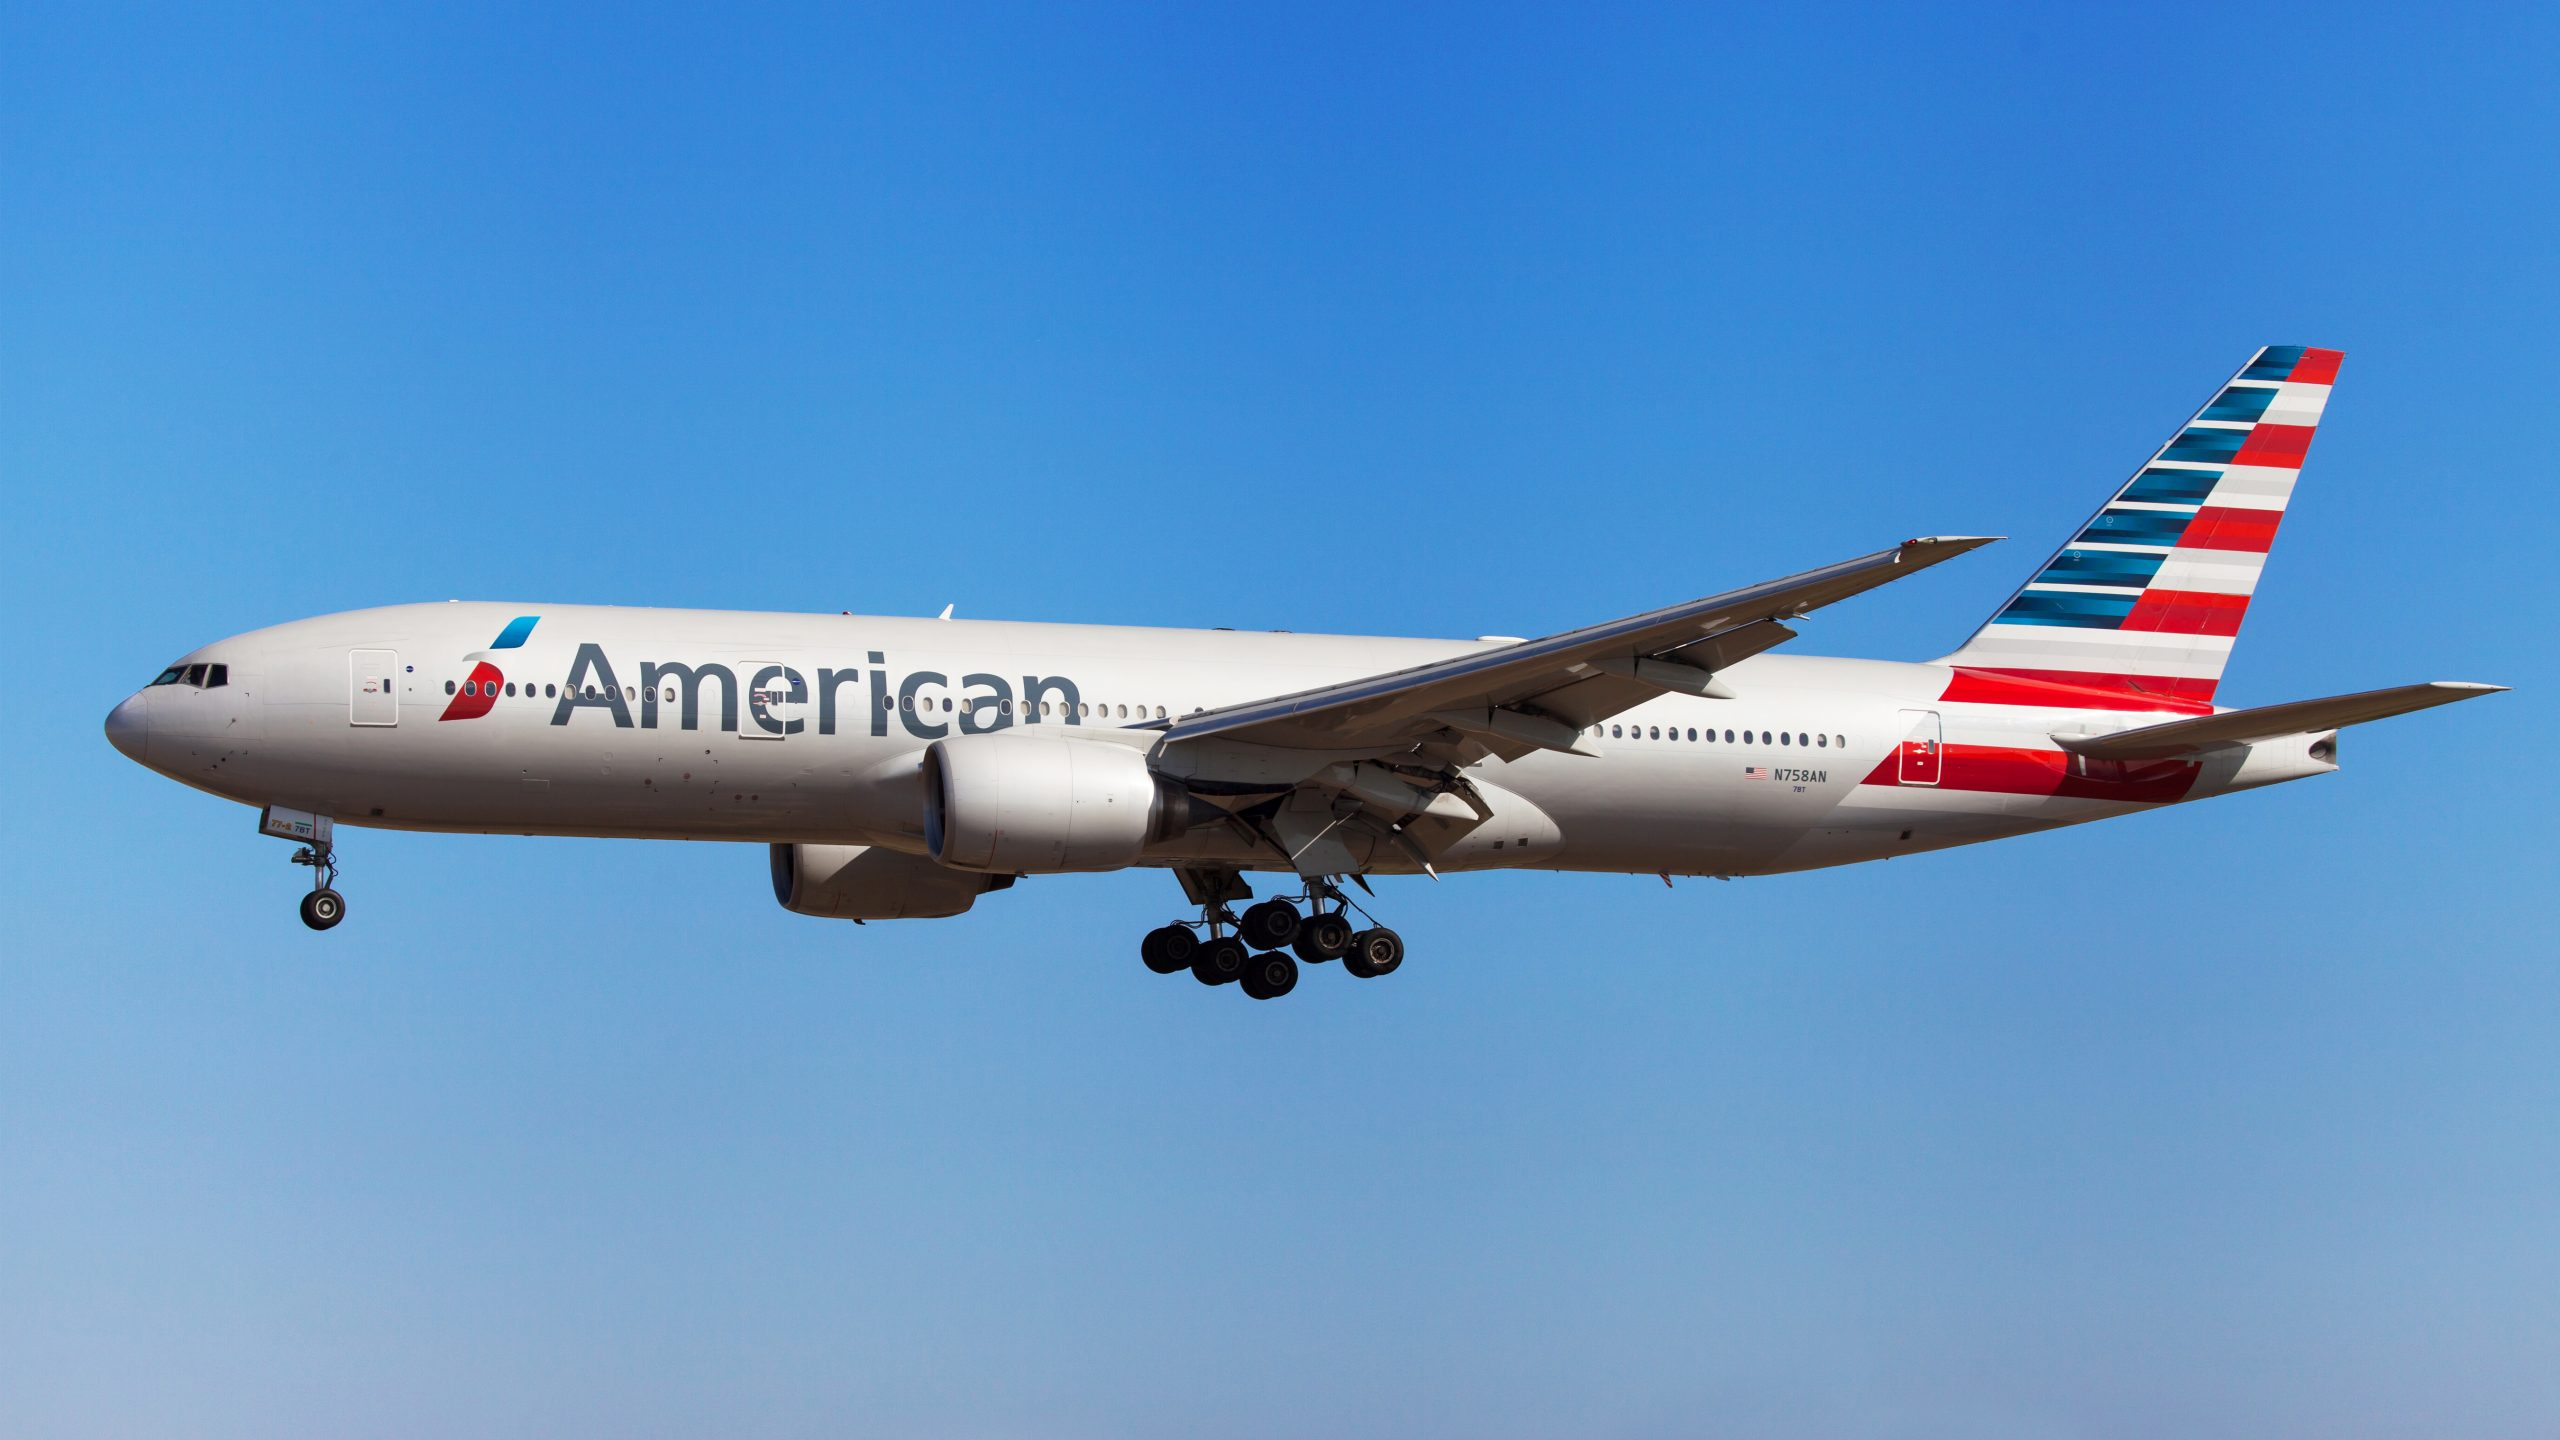 Chicago police remove 'disruptive passenger' that caused 'disturbance' on American Airlines flight